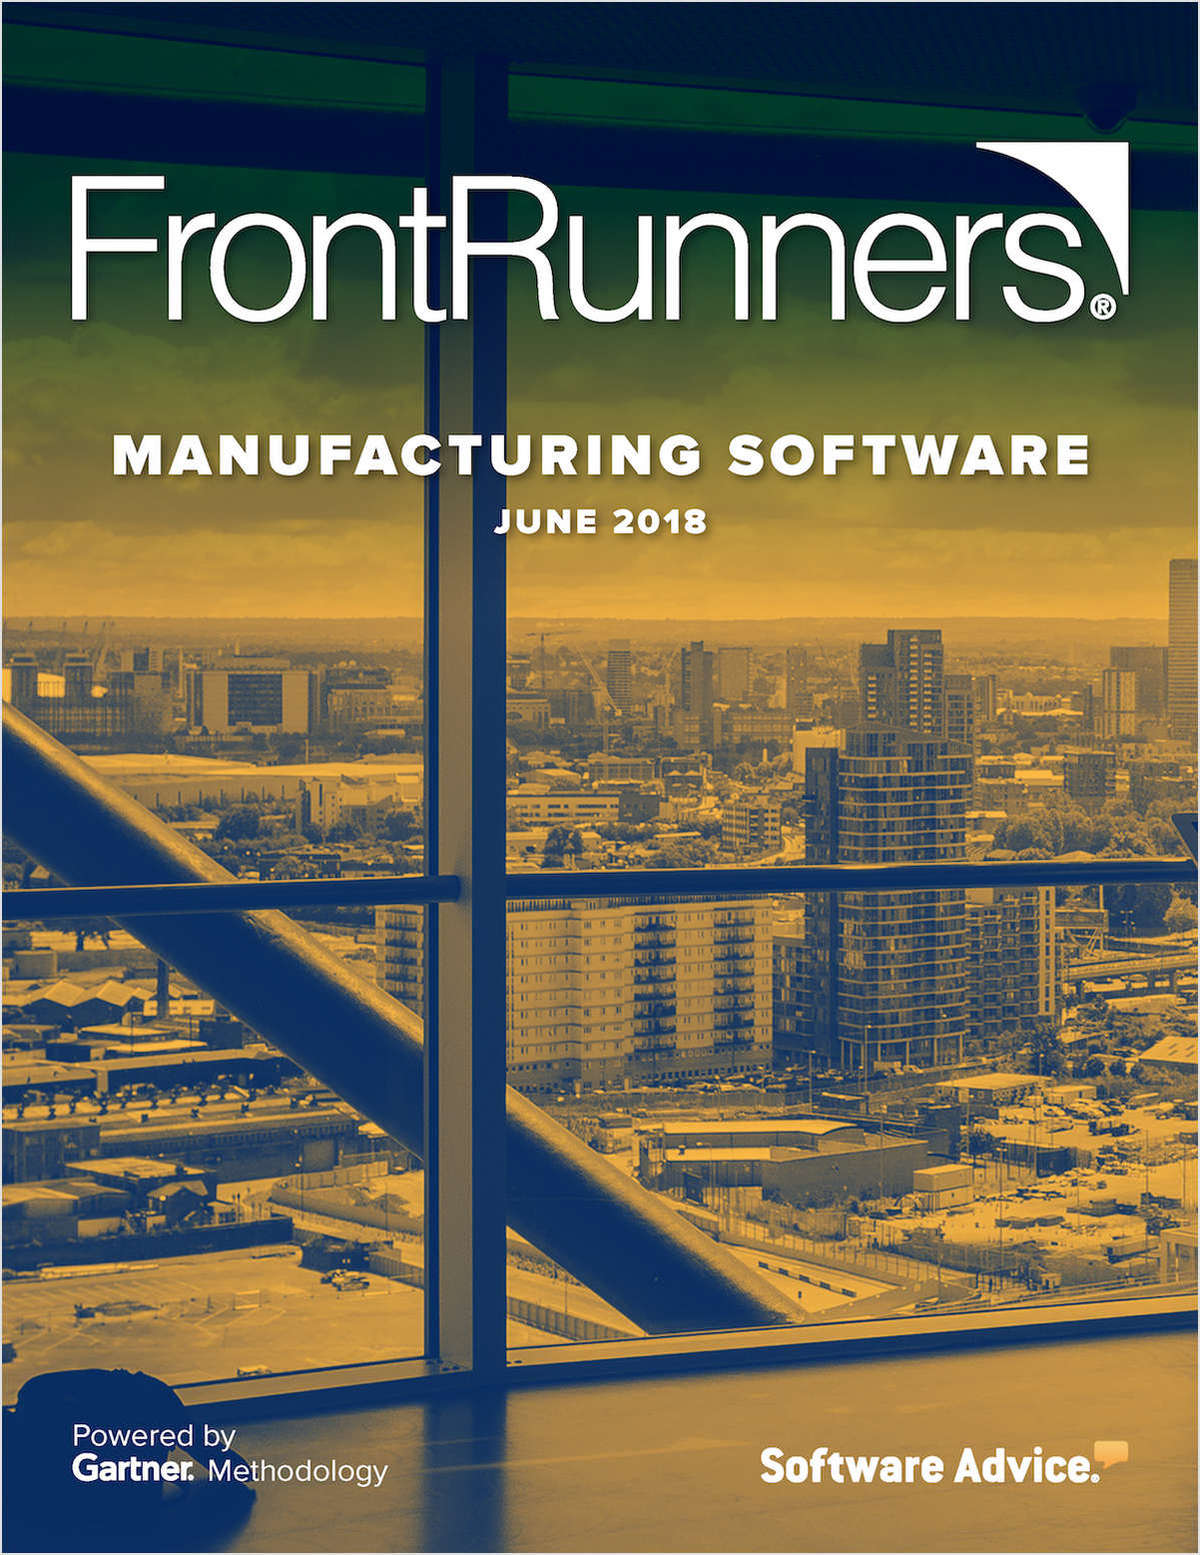 Top Rated FrontRunners for Manufacturing Software